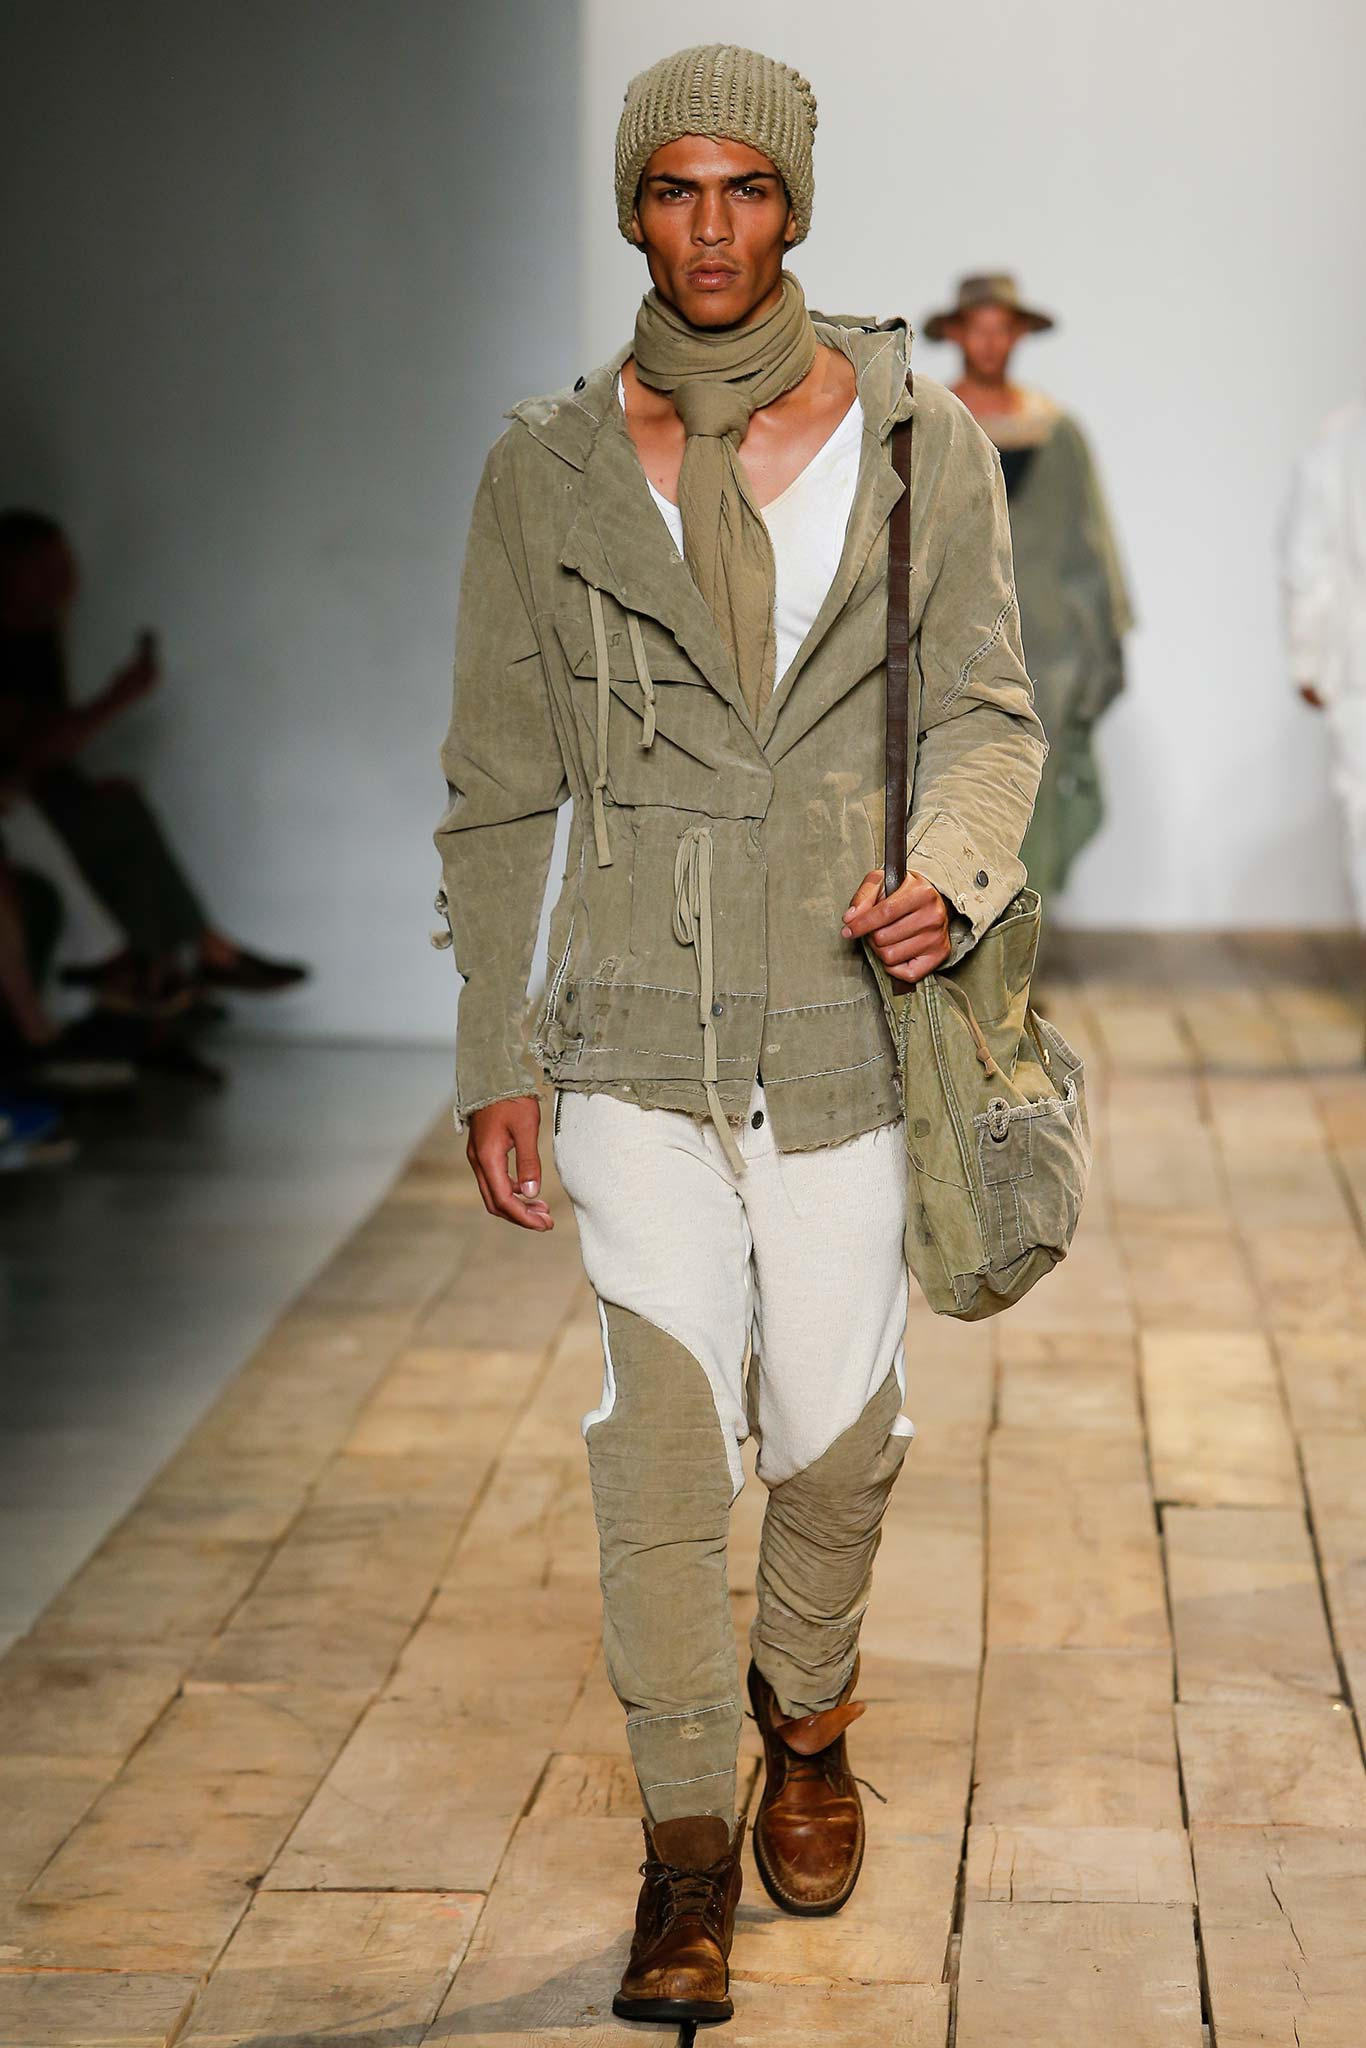 greg lauren, nyfwm, new york fashion week, new york fashion week mens